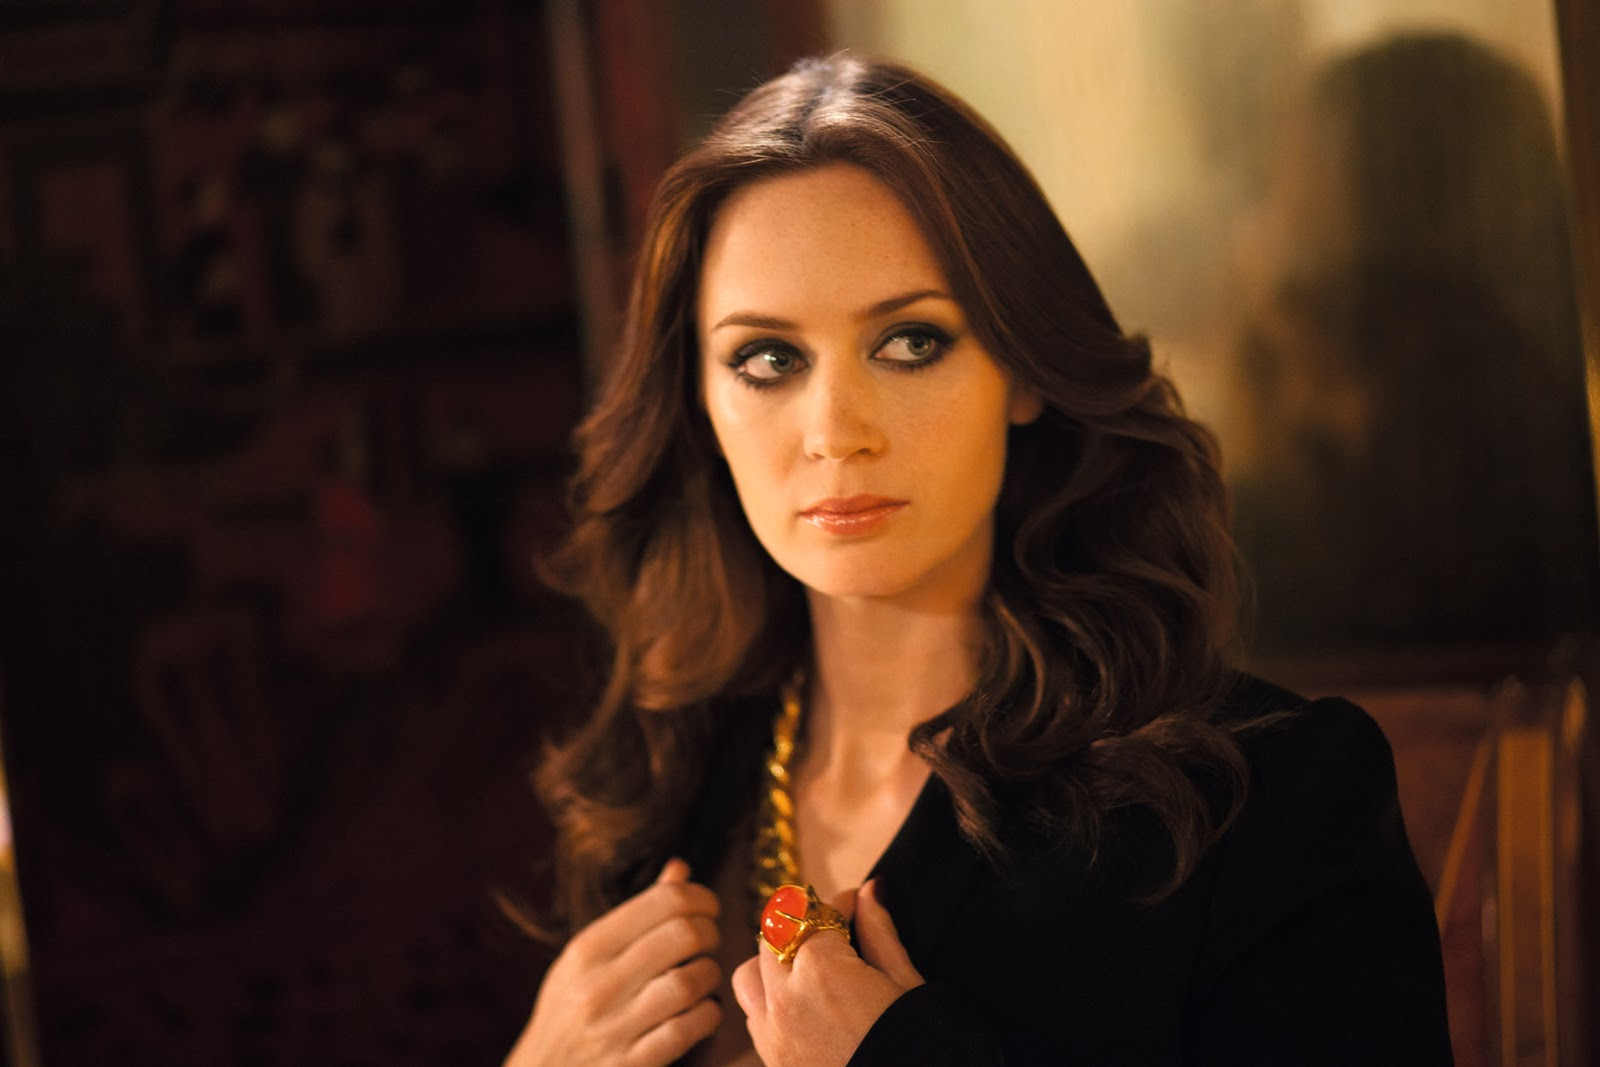 Emily Blunt is the new face of YSL Opium